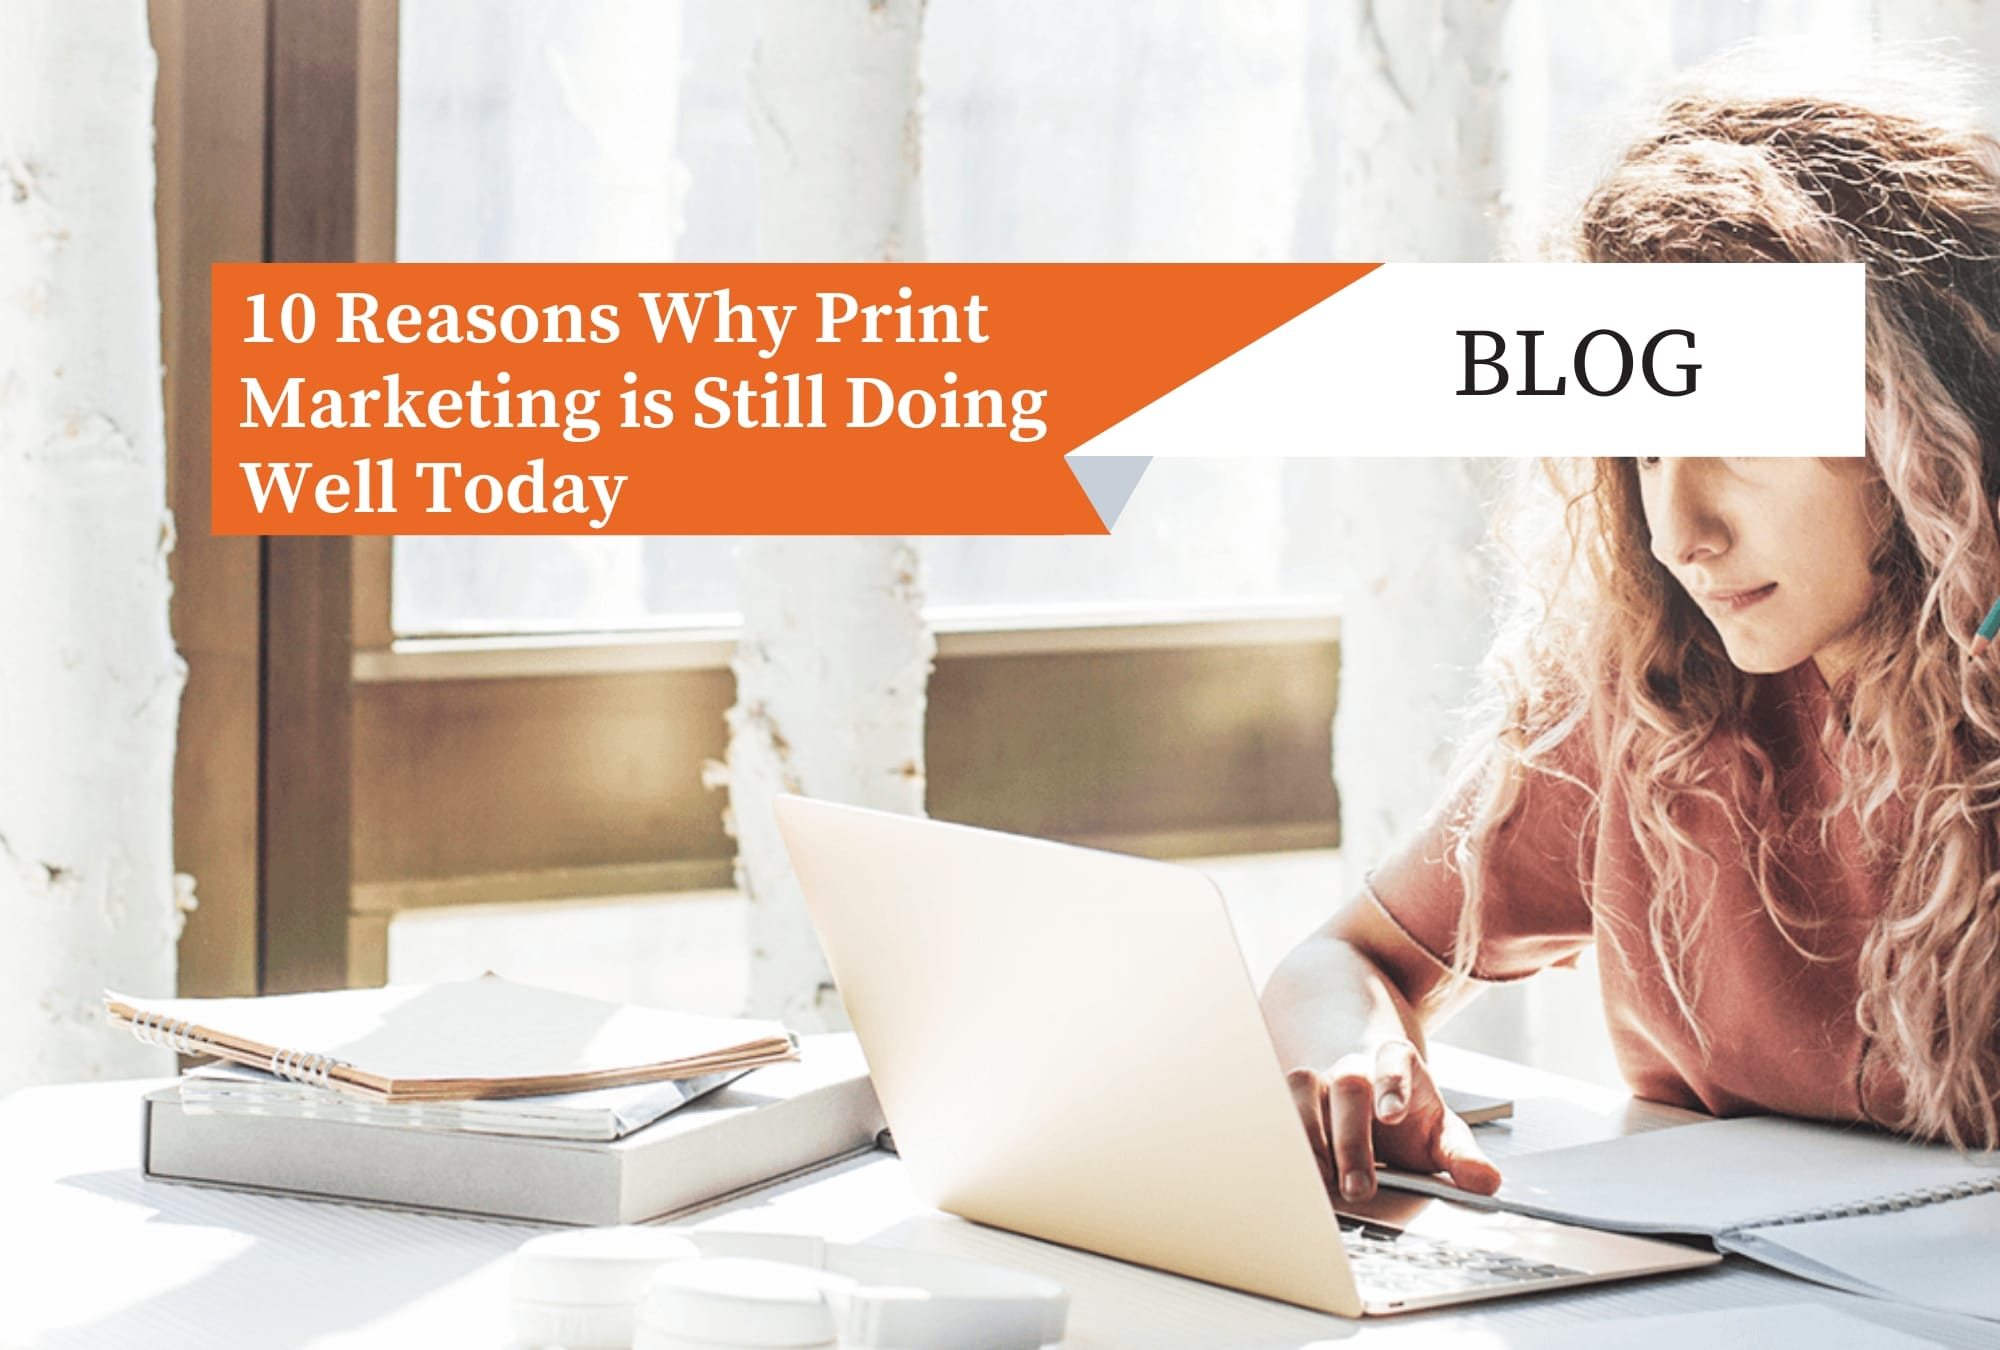 10 Reasons Why Print Marketing is Still Doing Well Today